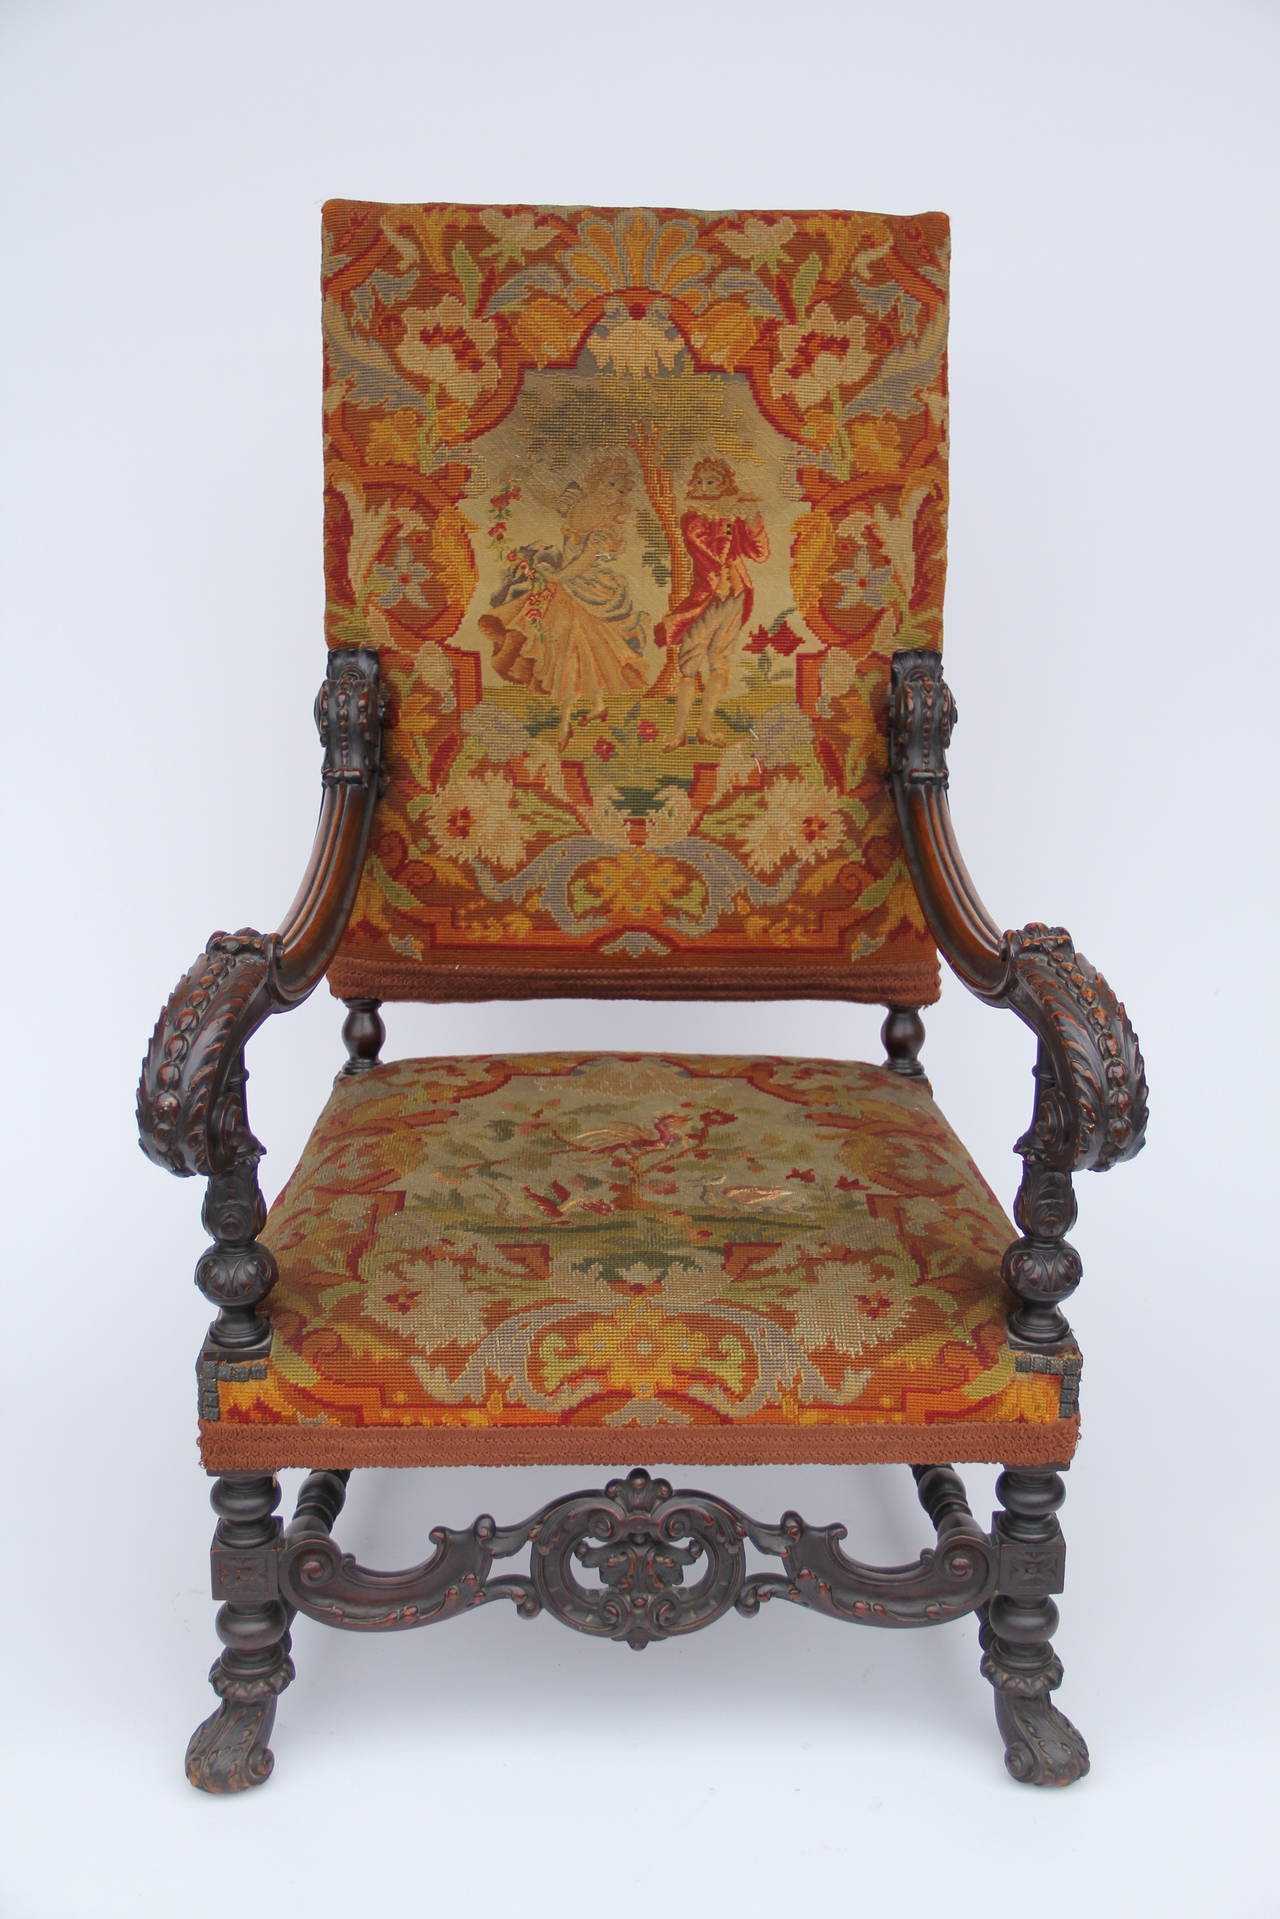 Antique Louis XIV Style Carved Fauteuil High Back Armchair with